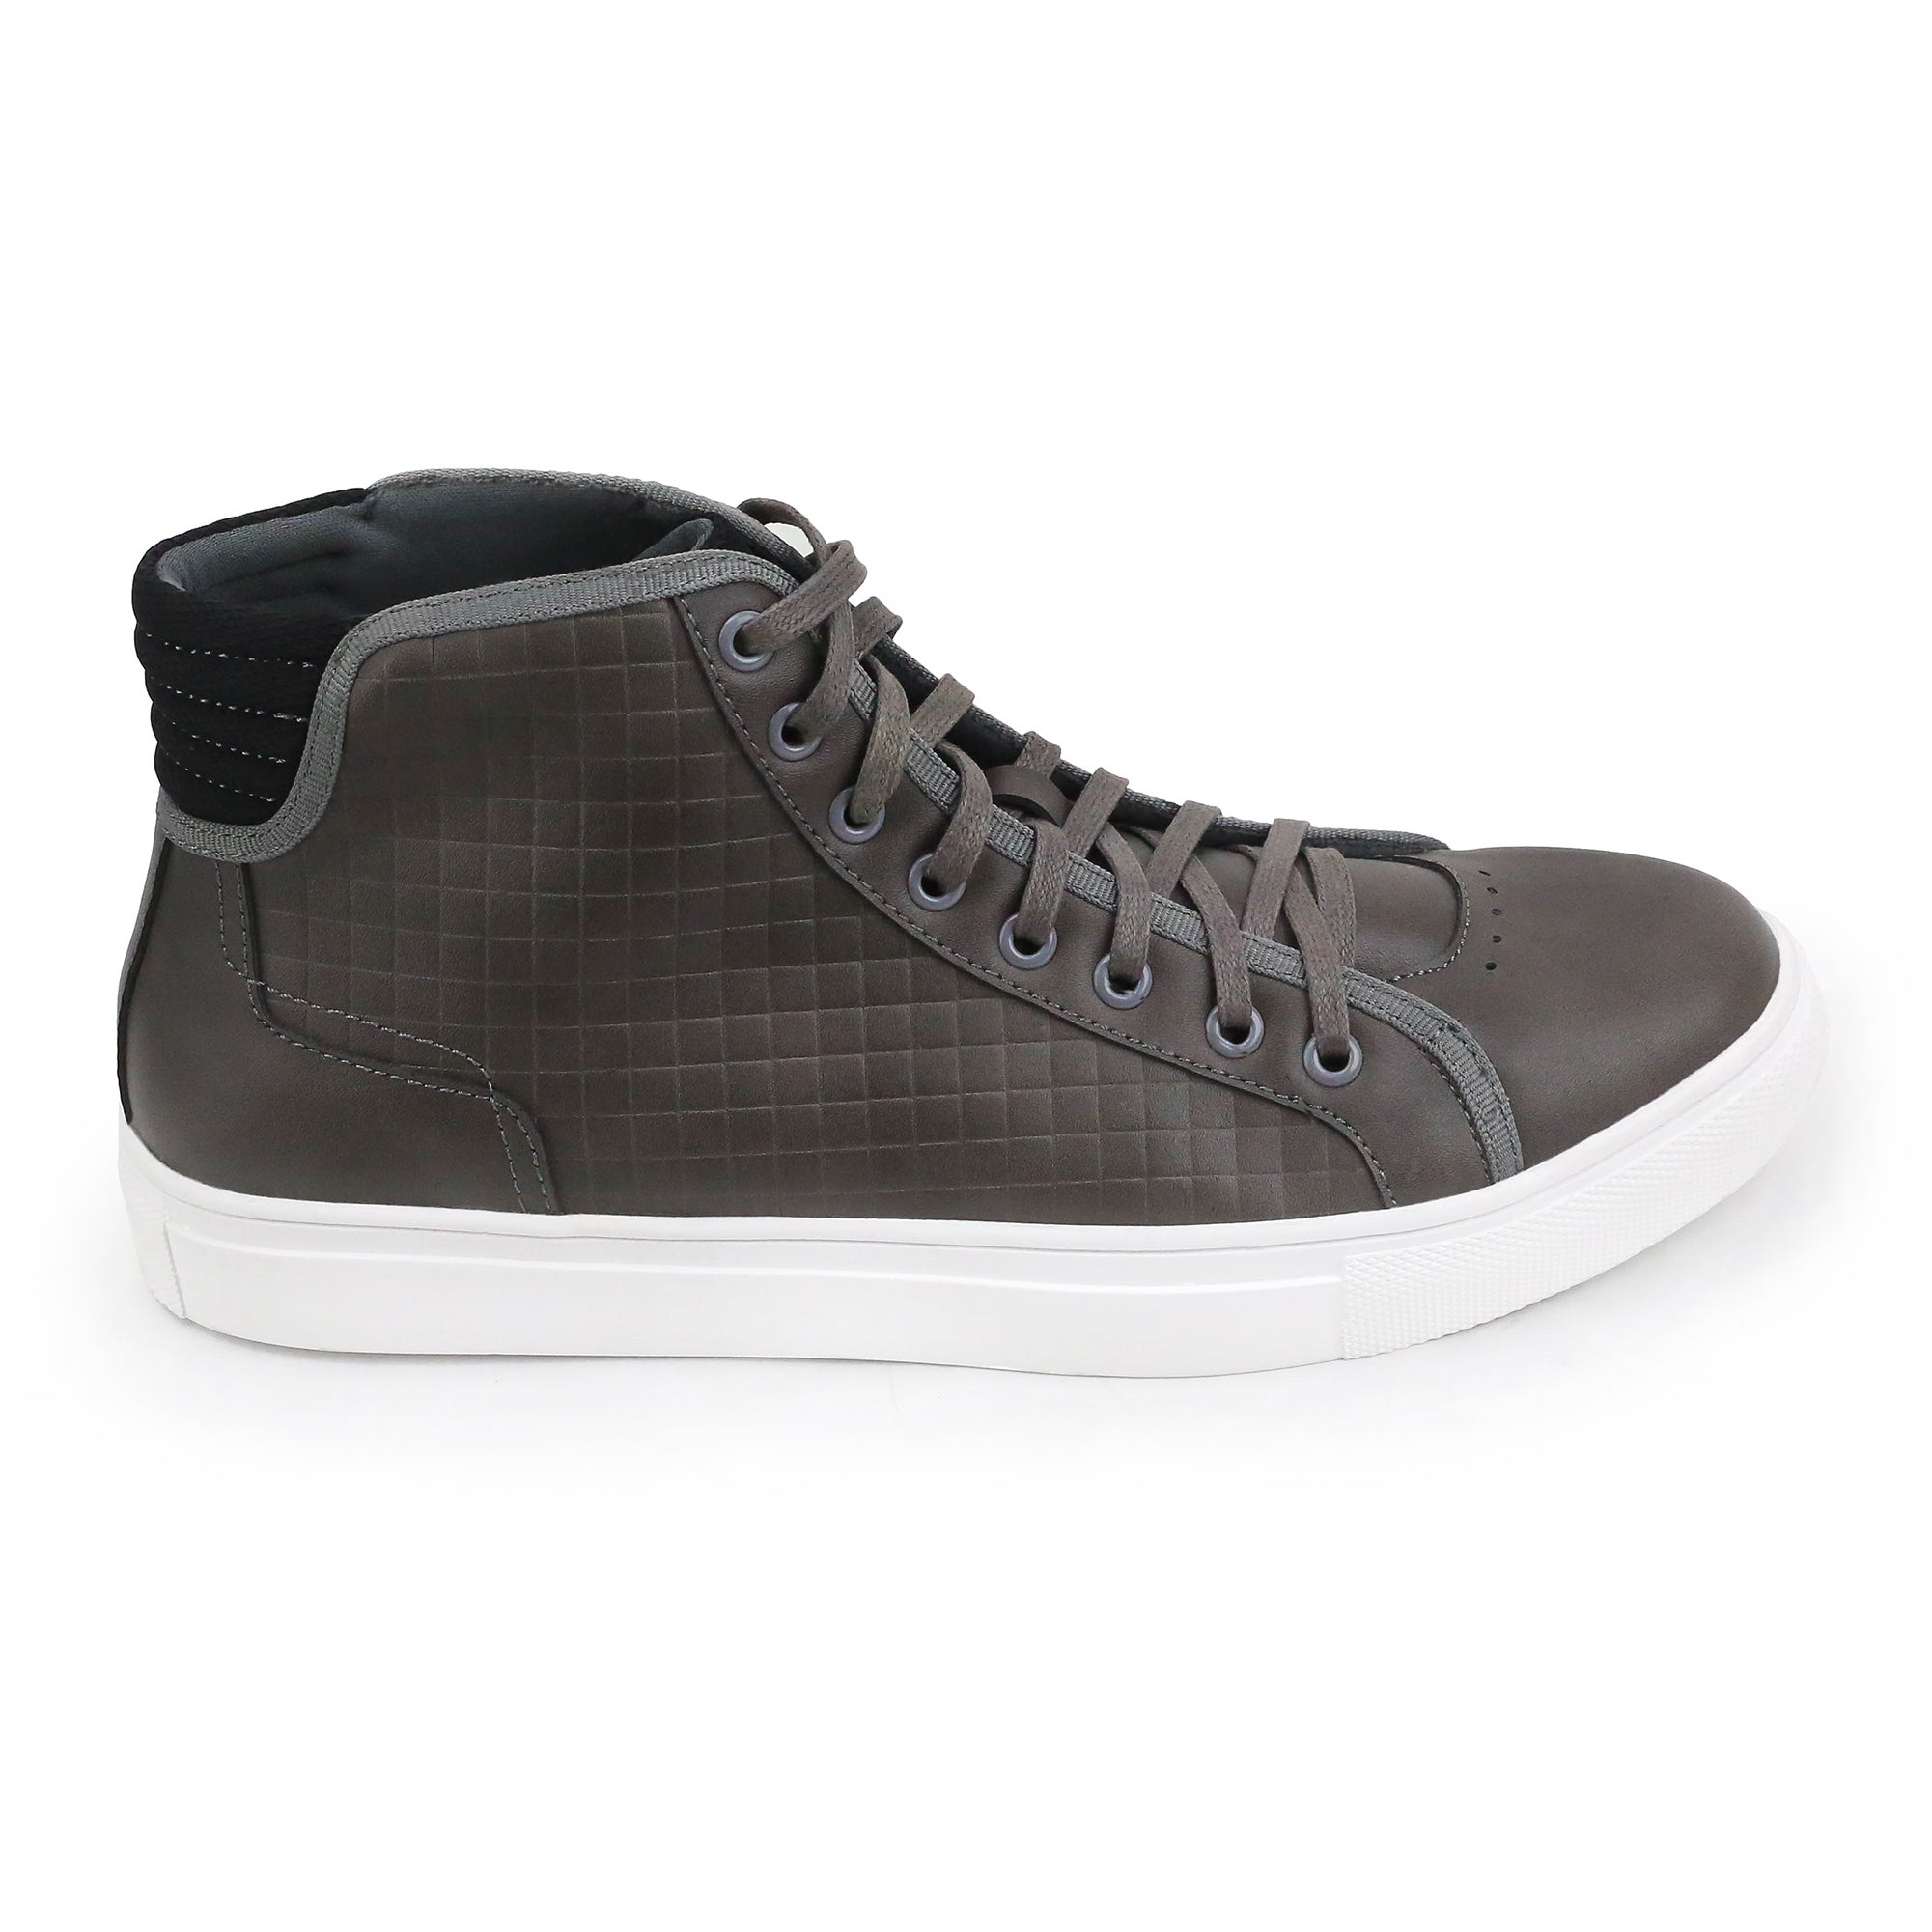 4e116dd5bf09 Shop Xray Penn White High-top Sneaker - On Sale - Free Shipping Today -  Overstock - 14297794